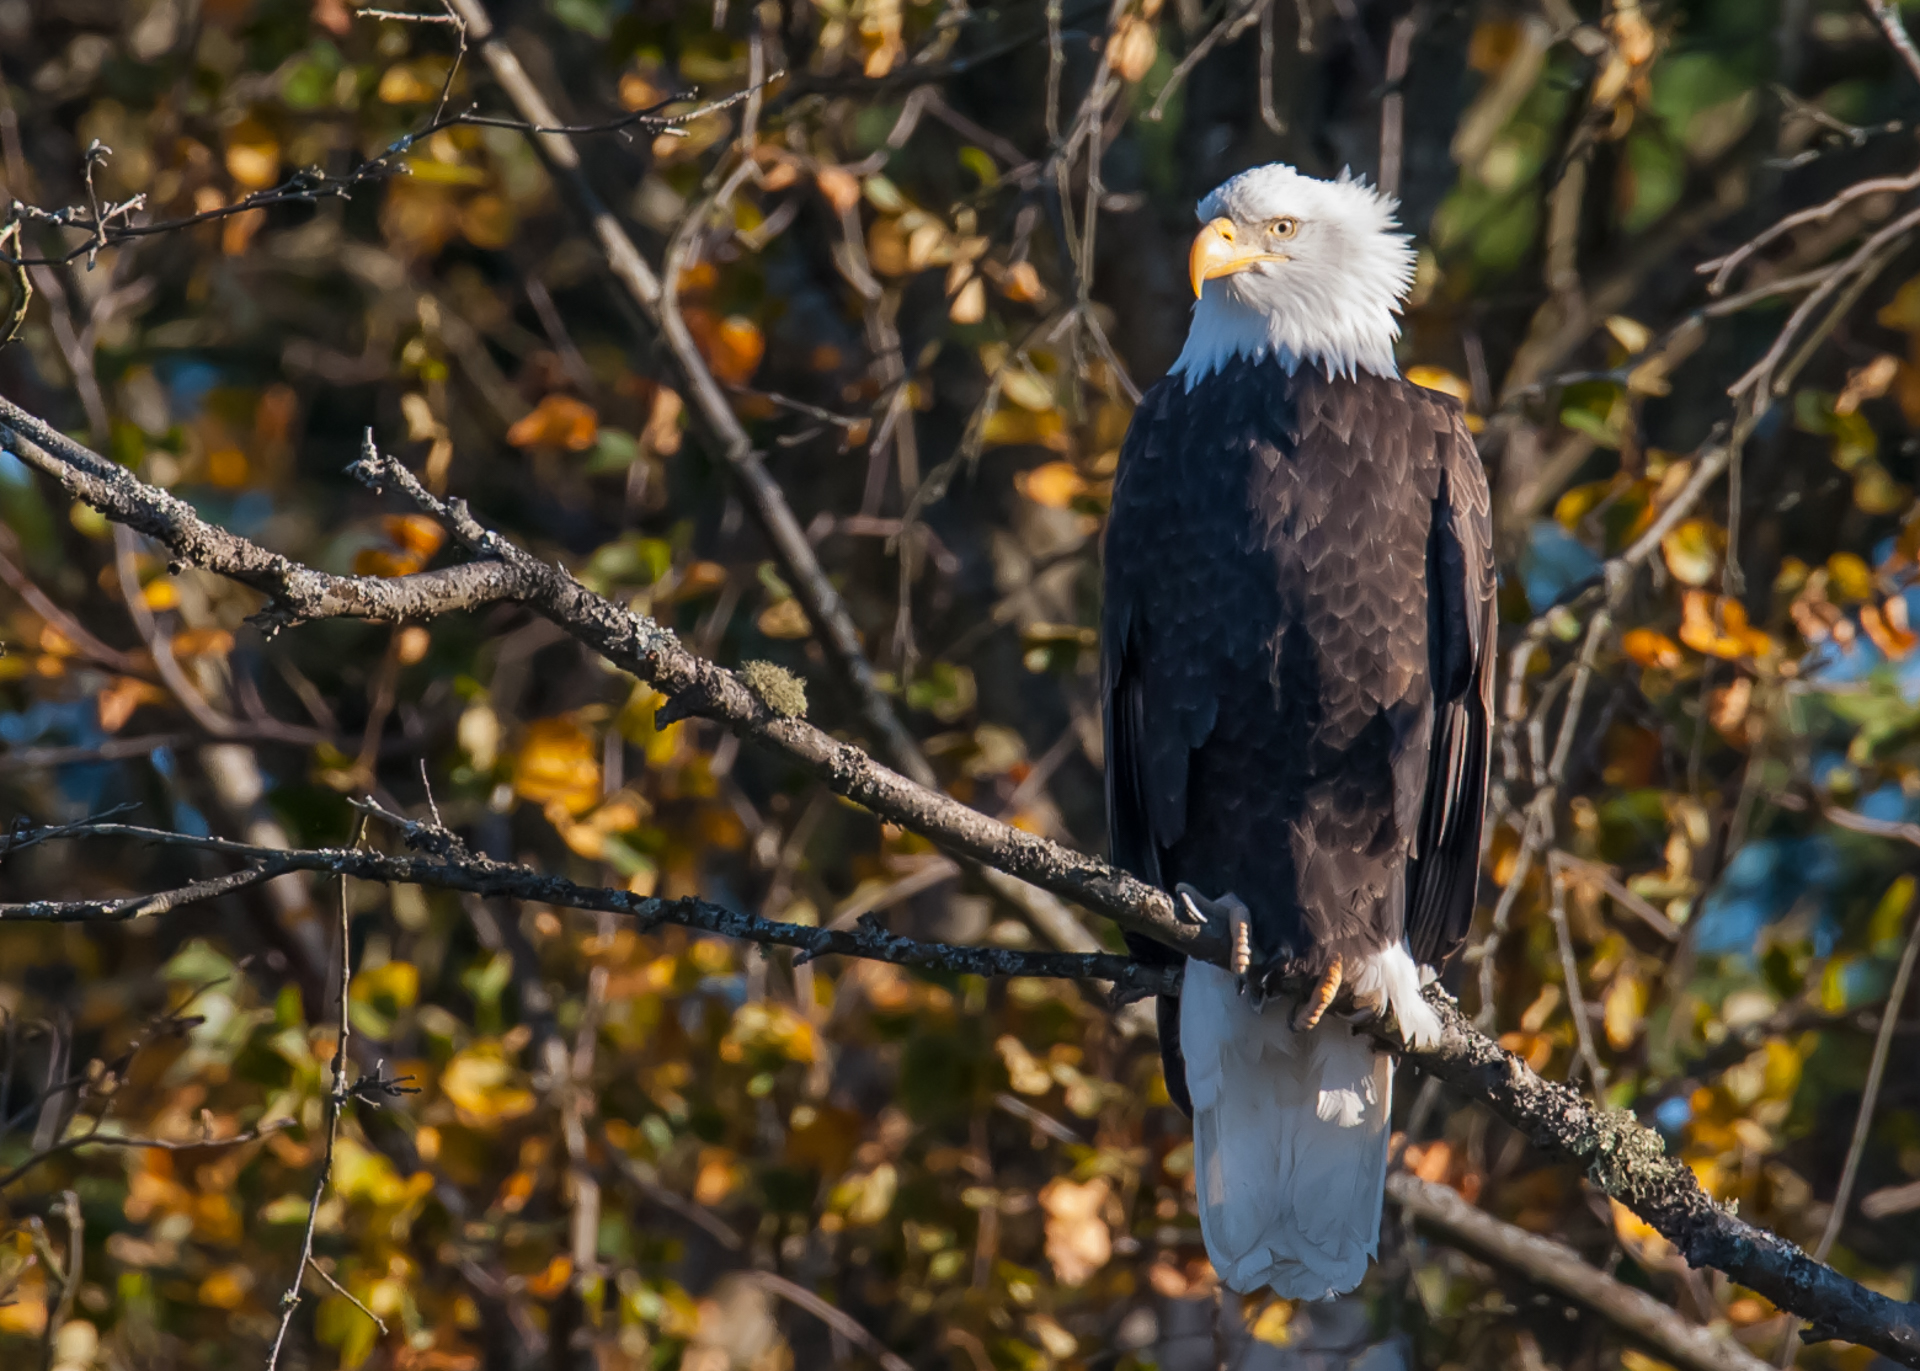 A bald eagle, in the tree right near the front entrance.